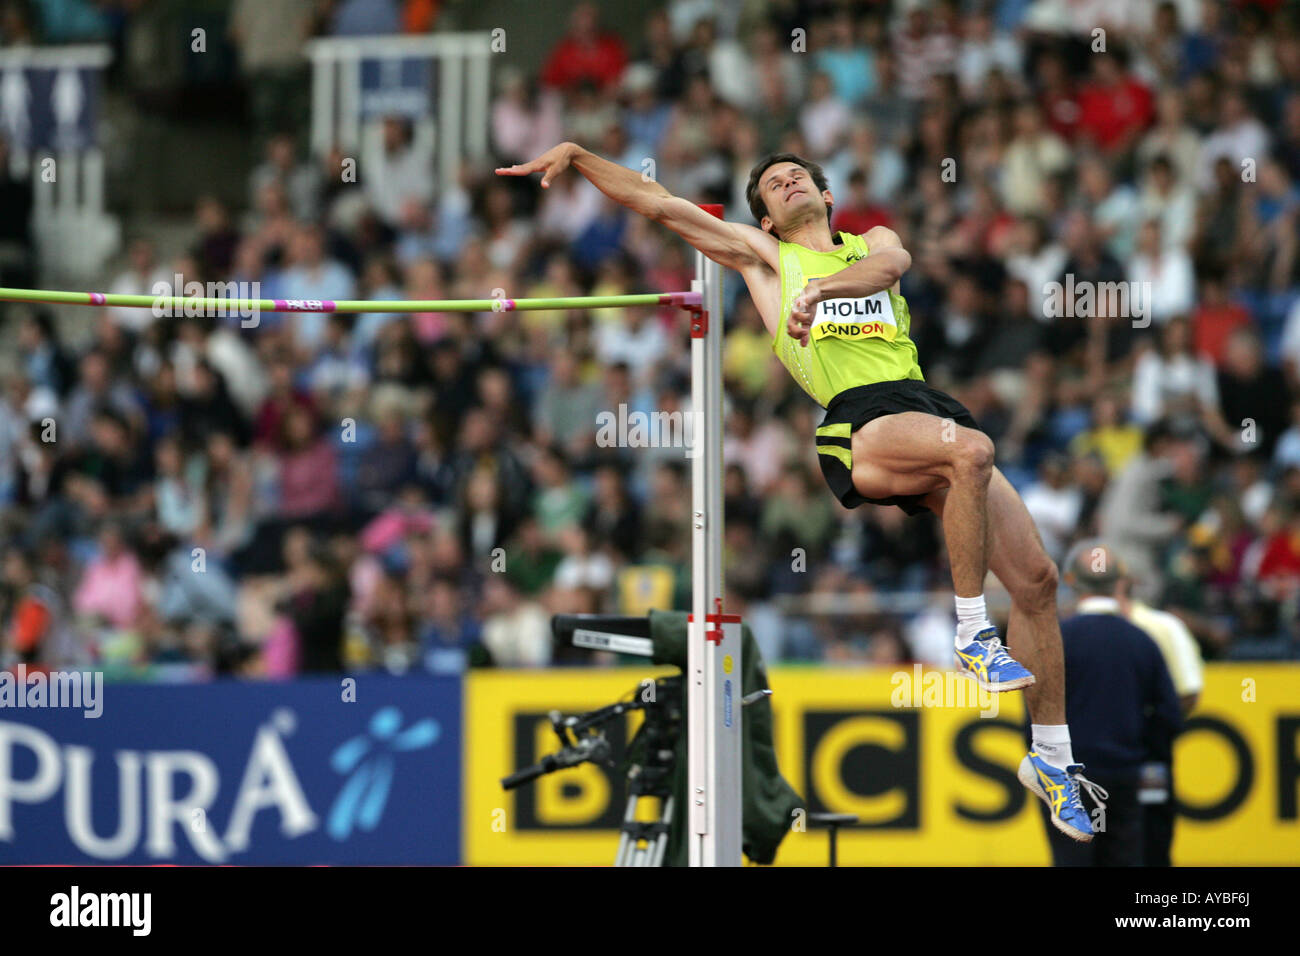 Sweden's Olympic champion Stefan Holm wins the Crystal Palace Grand Prix 2007 High Jump with 2.32m - Stock Image